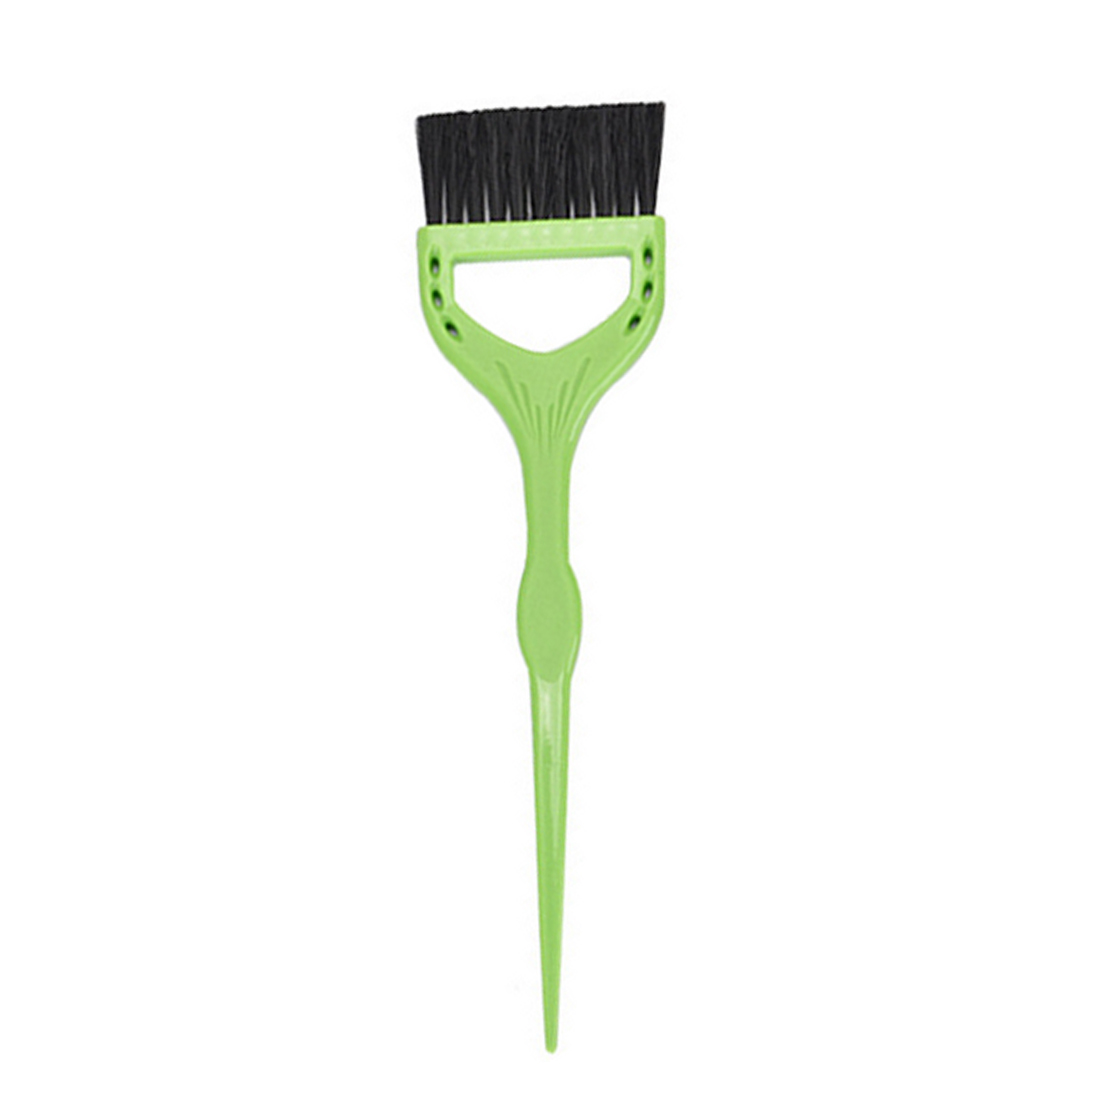 Plastic Hair Brushes Application Hall Hue Perm Lye Dye  Combs Coloring DIY Hairdressing Tool  Comb Tools Dyeing Hall